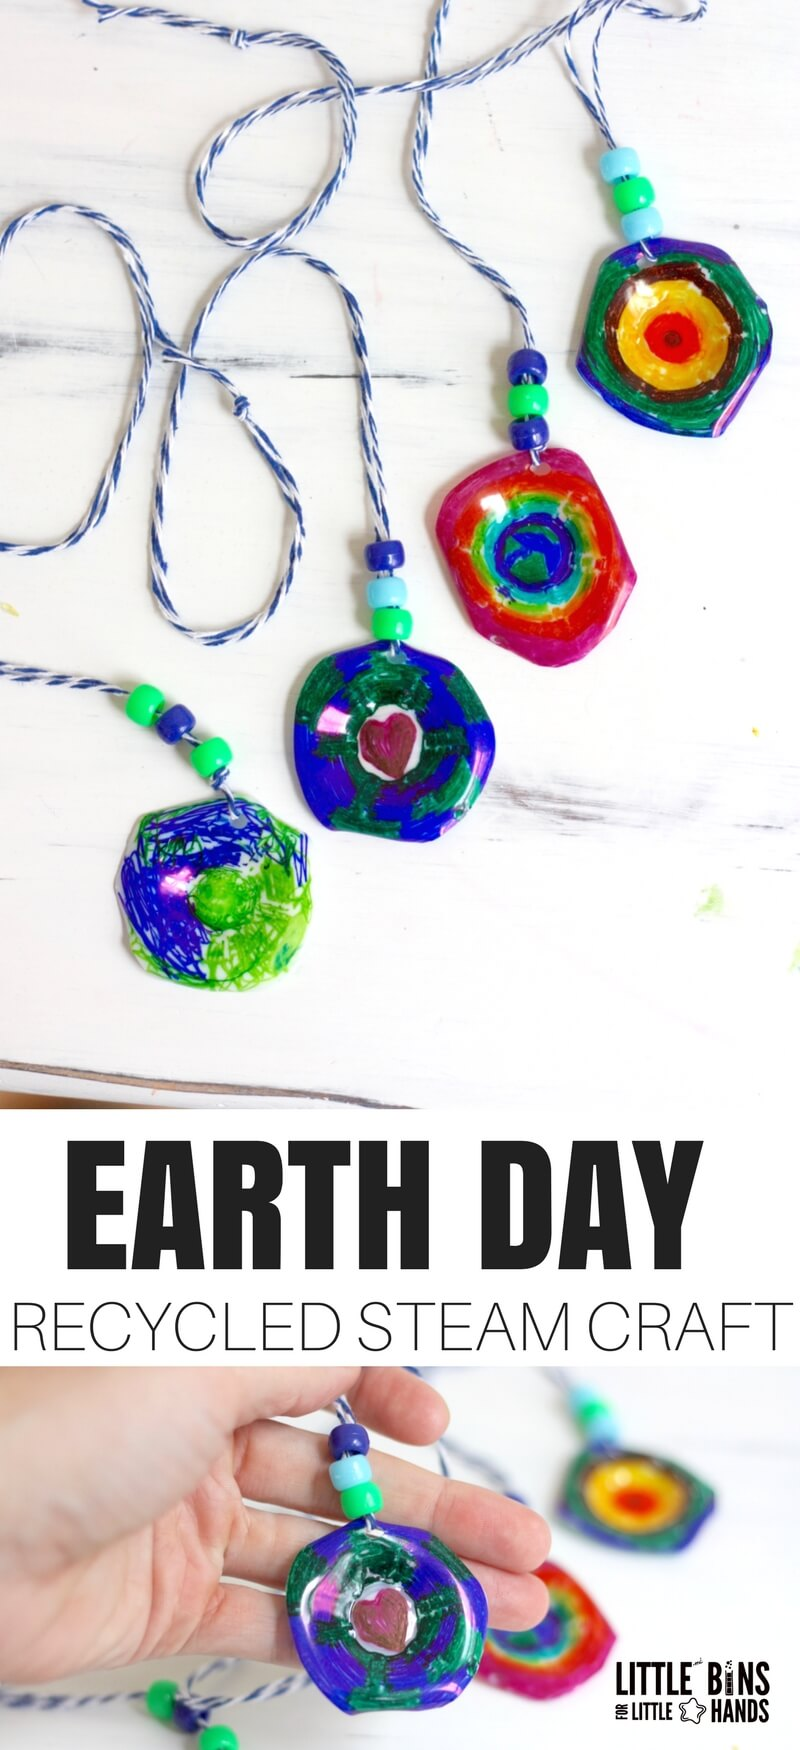 EASY EARTH DAY RECYCLED STEM CRAFT ACTIVITY